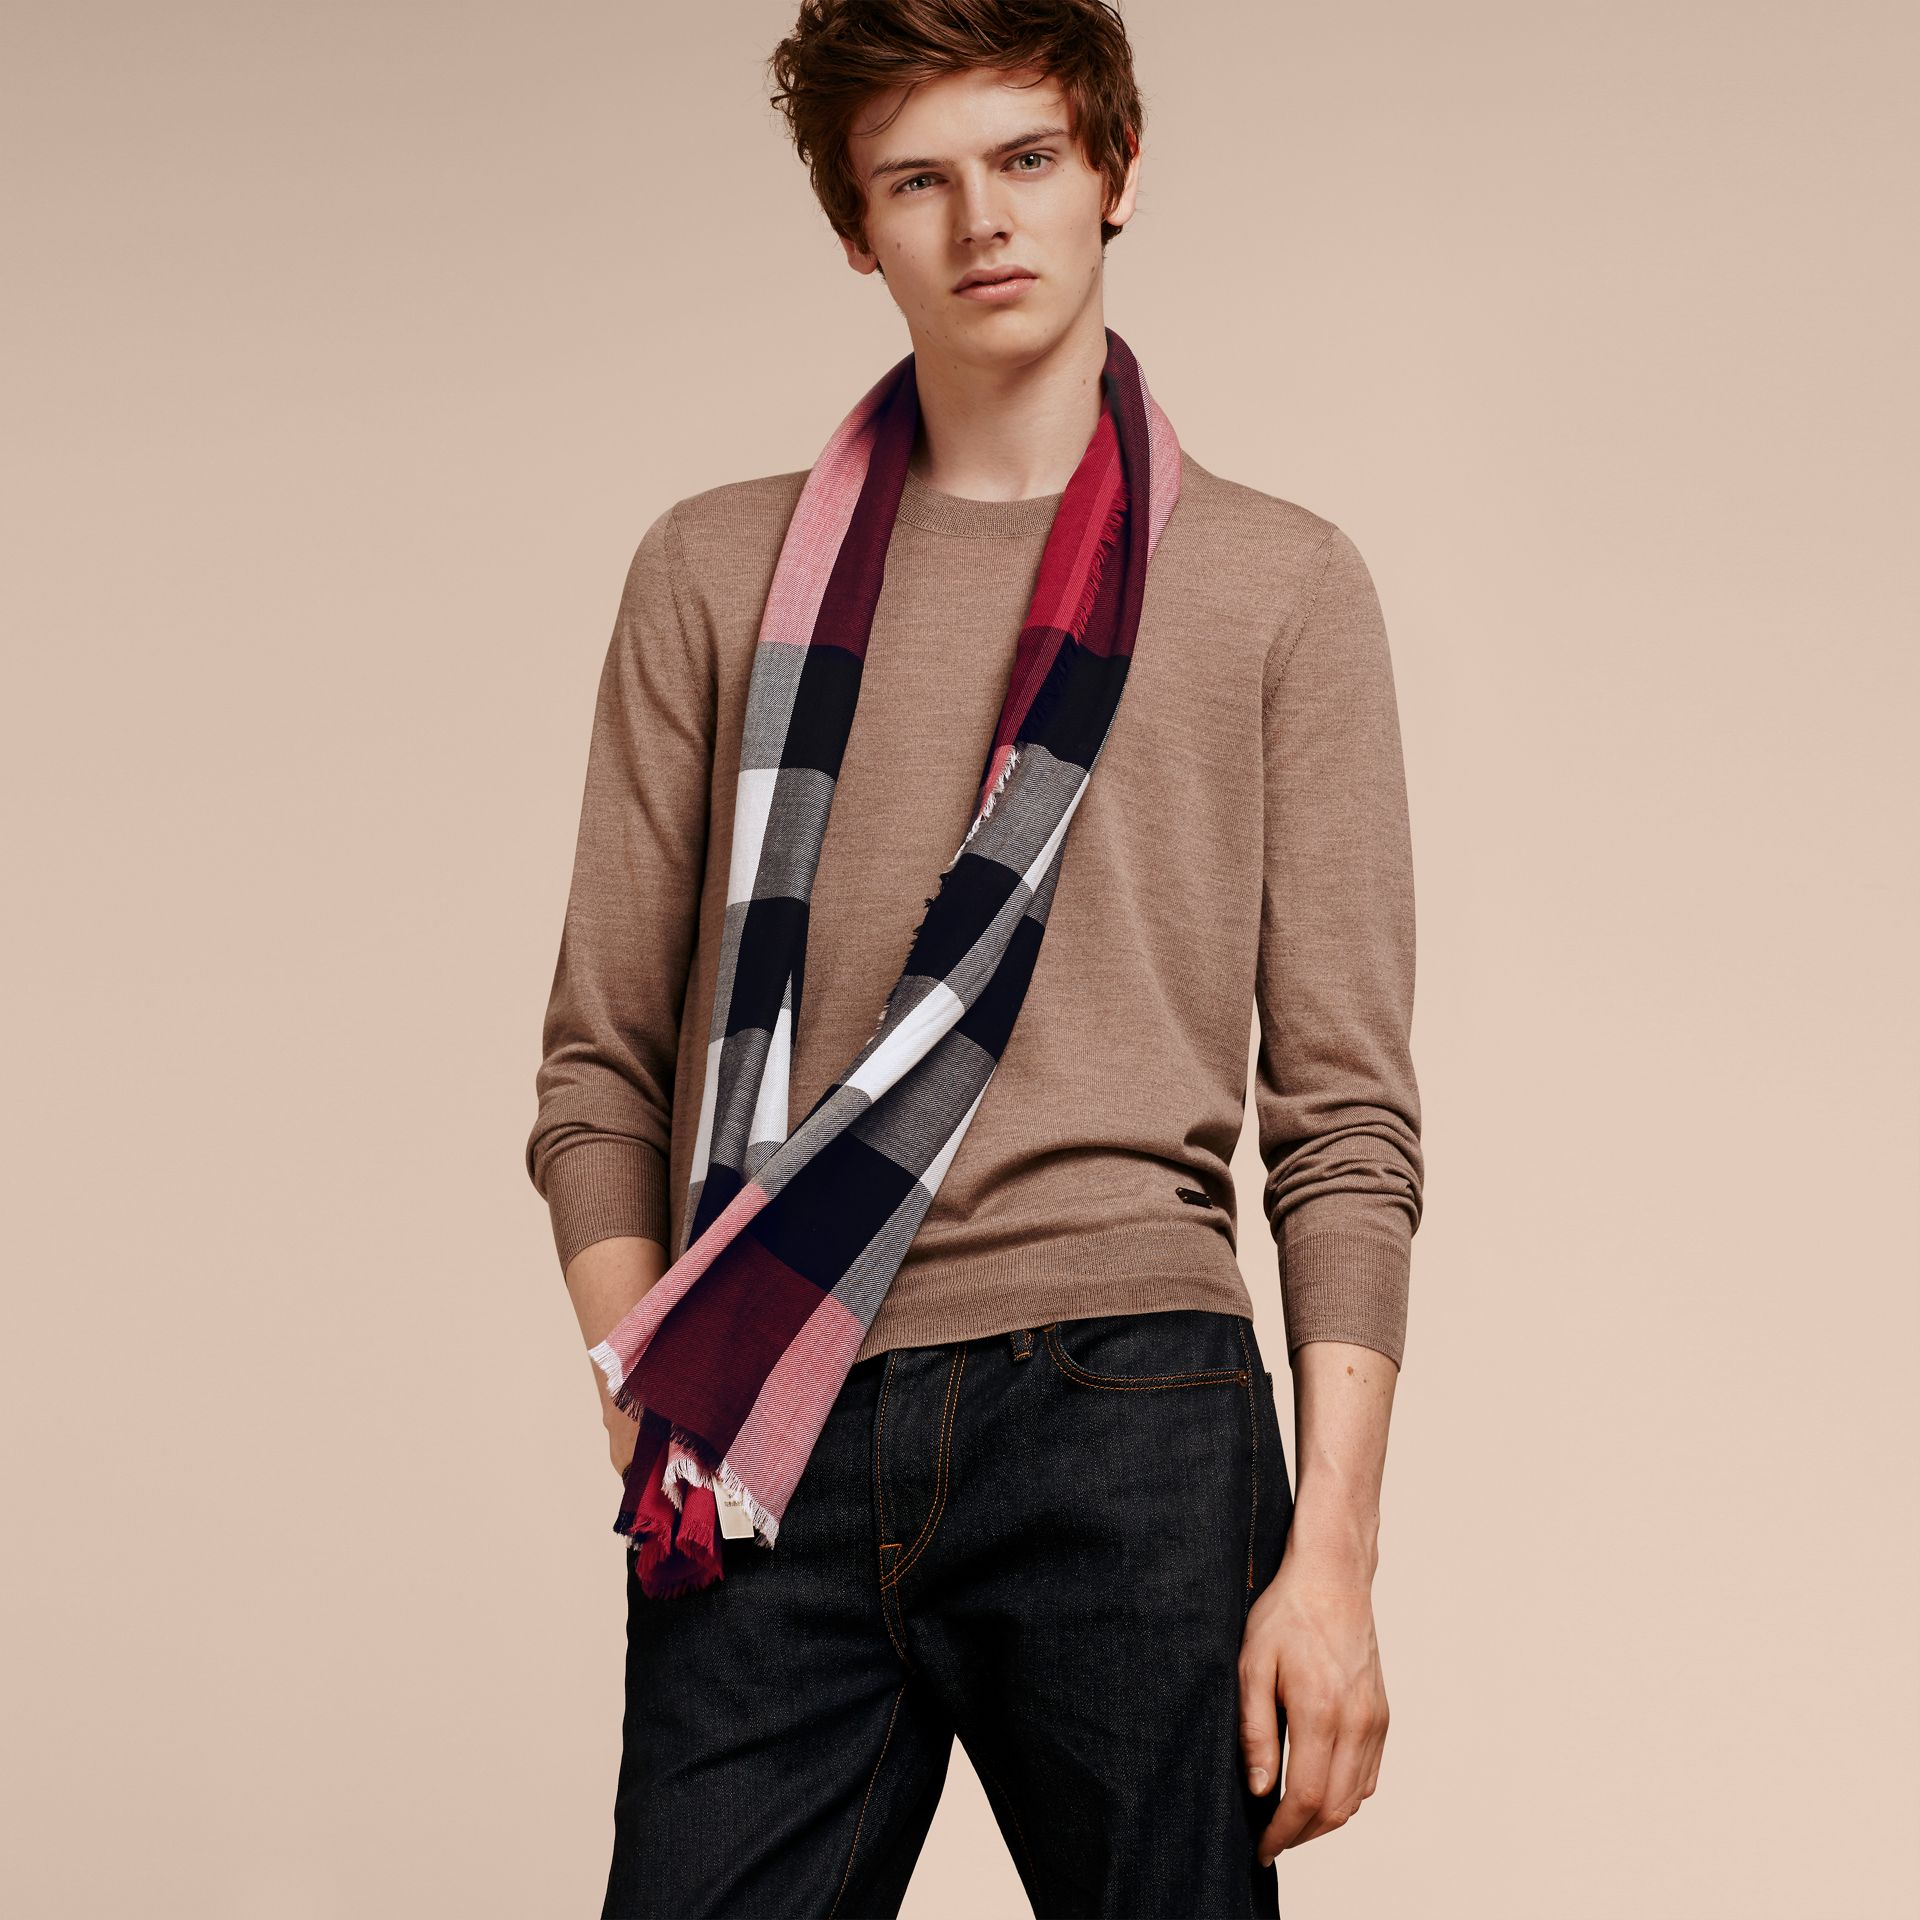 The Lightweight Cashmere Scarf in Check in Fuchsia Pink | Burberry - gallery image 4